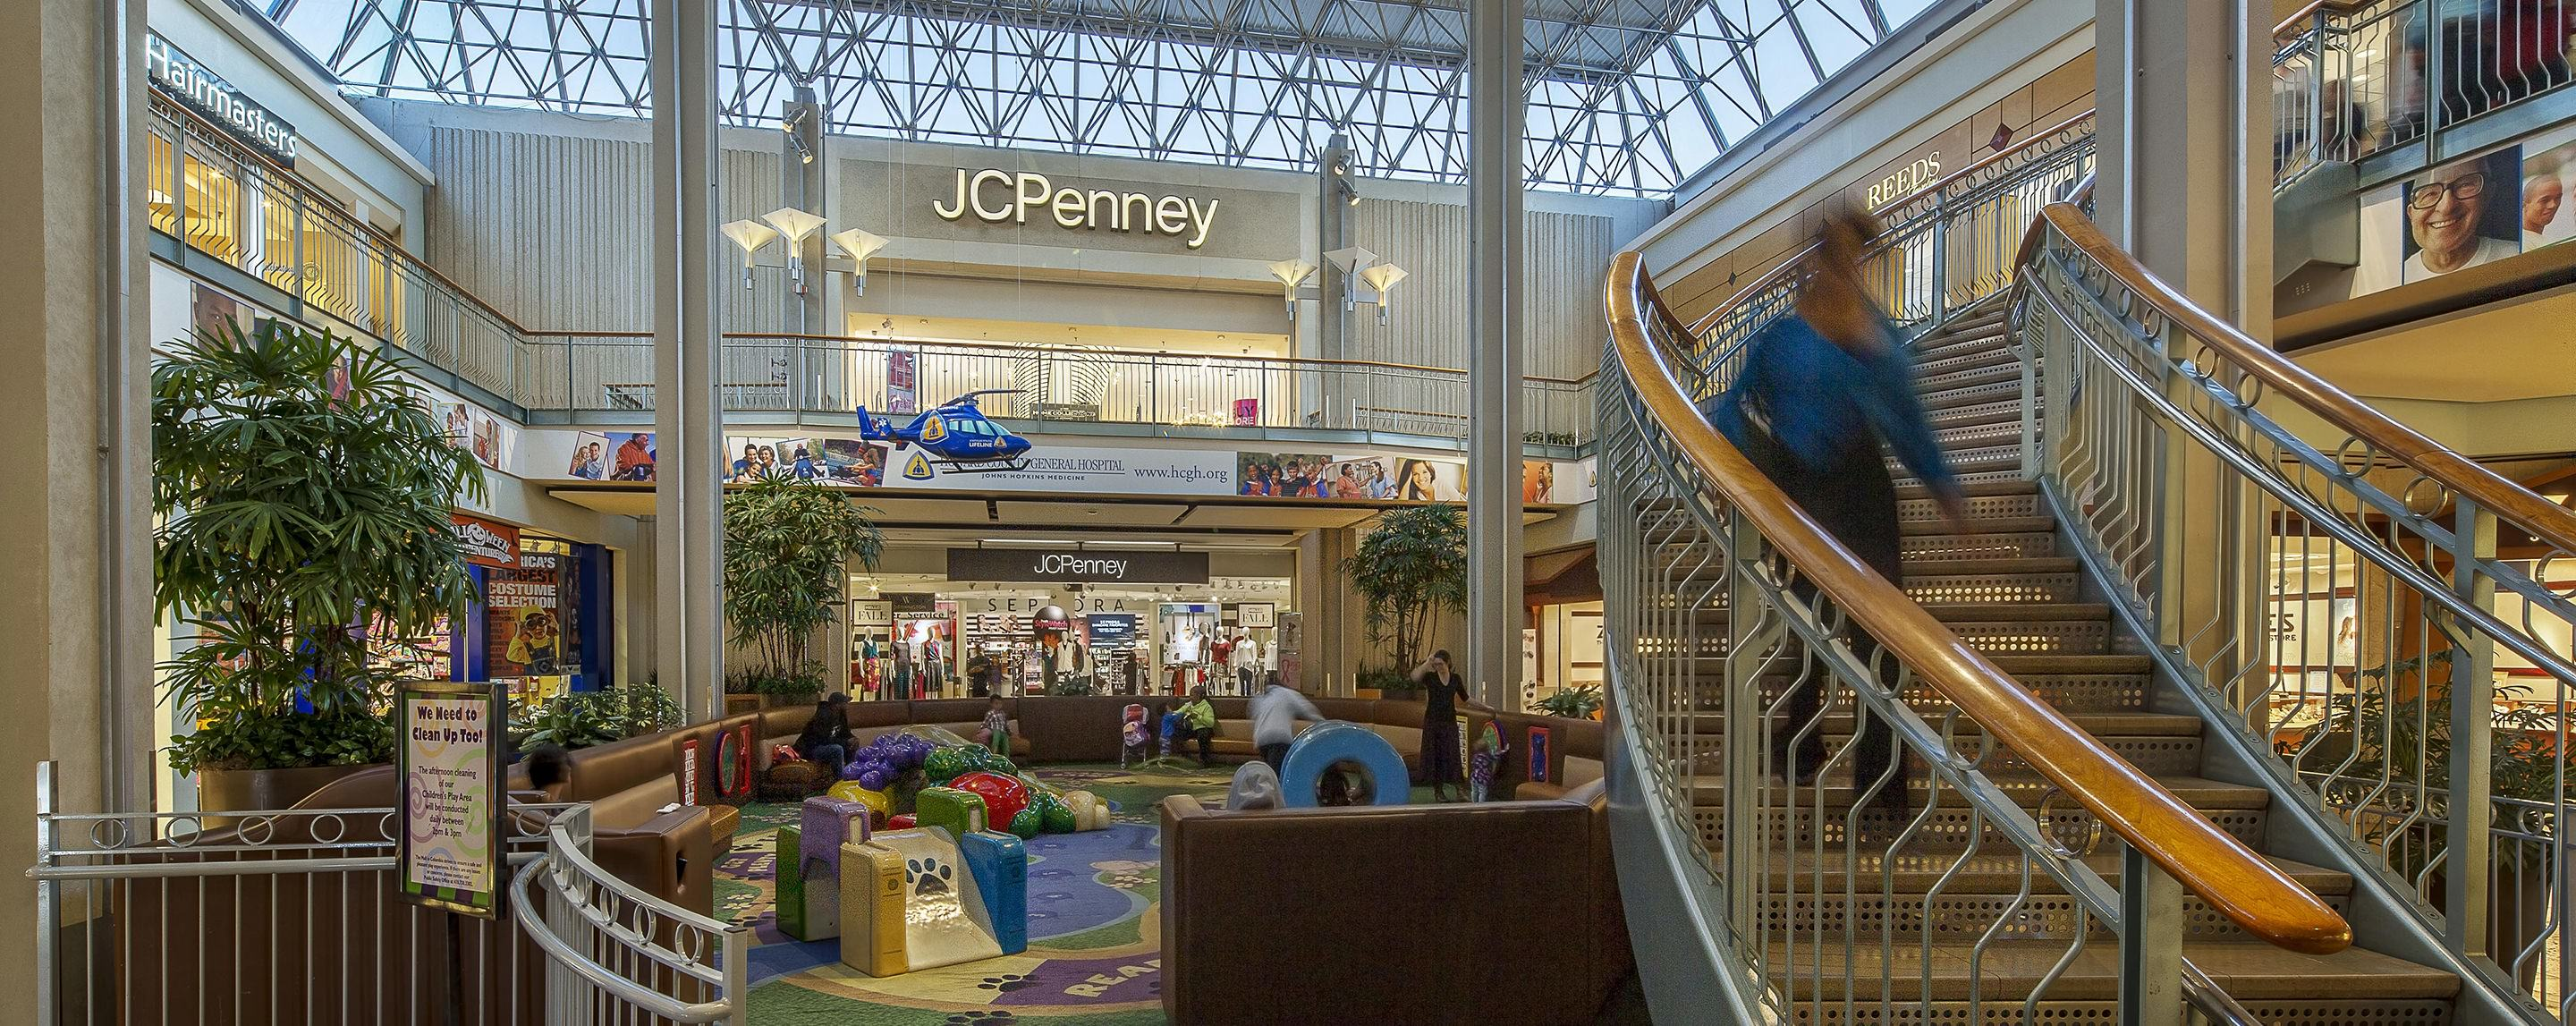 Children play in the play area in front of JCPenney at The Mall in Columbia.